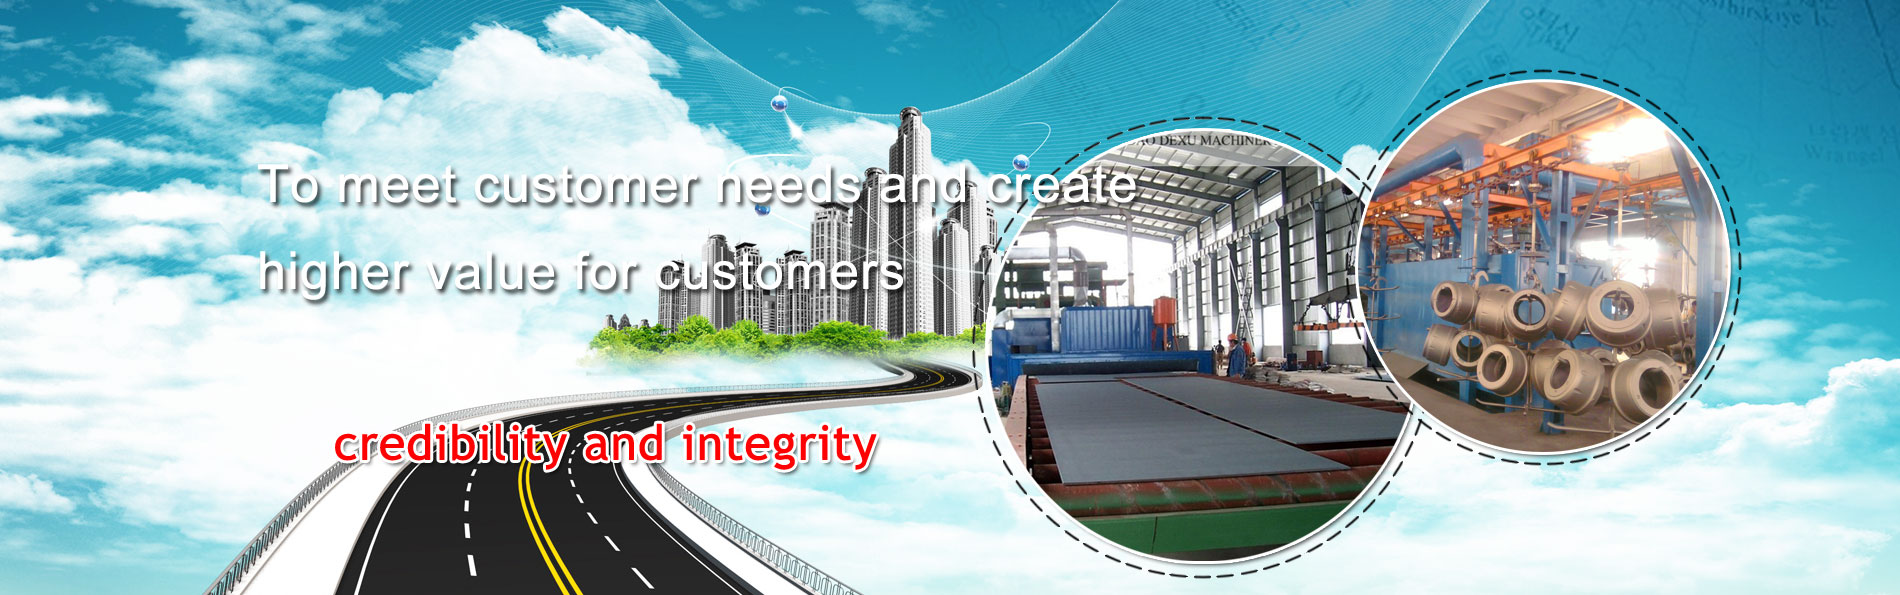 To meet customer needs and create  higher value for customers